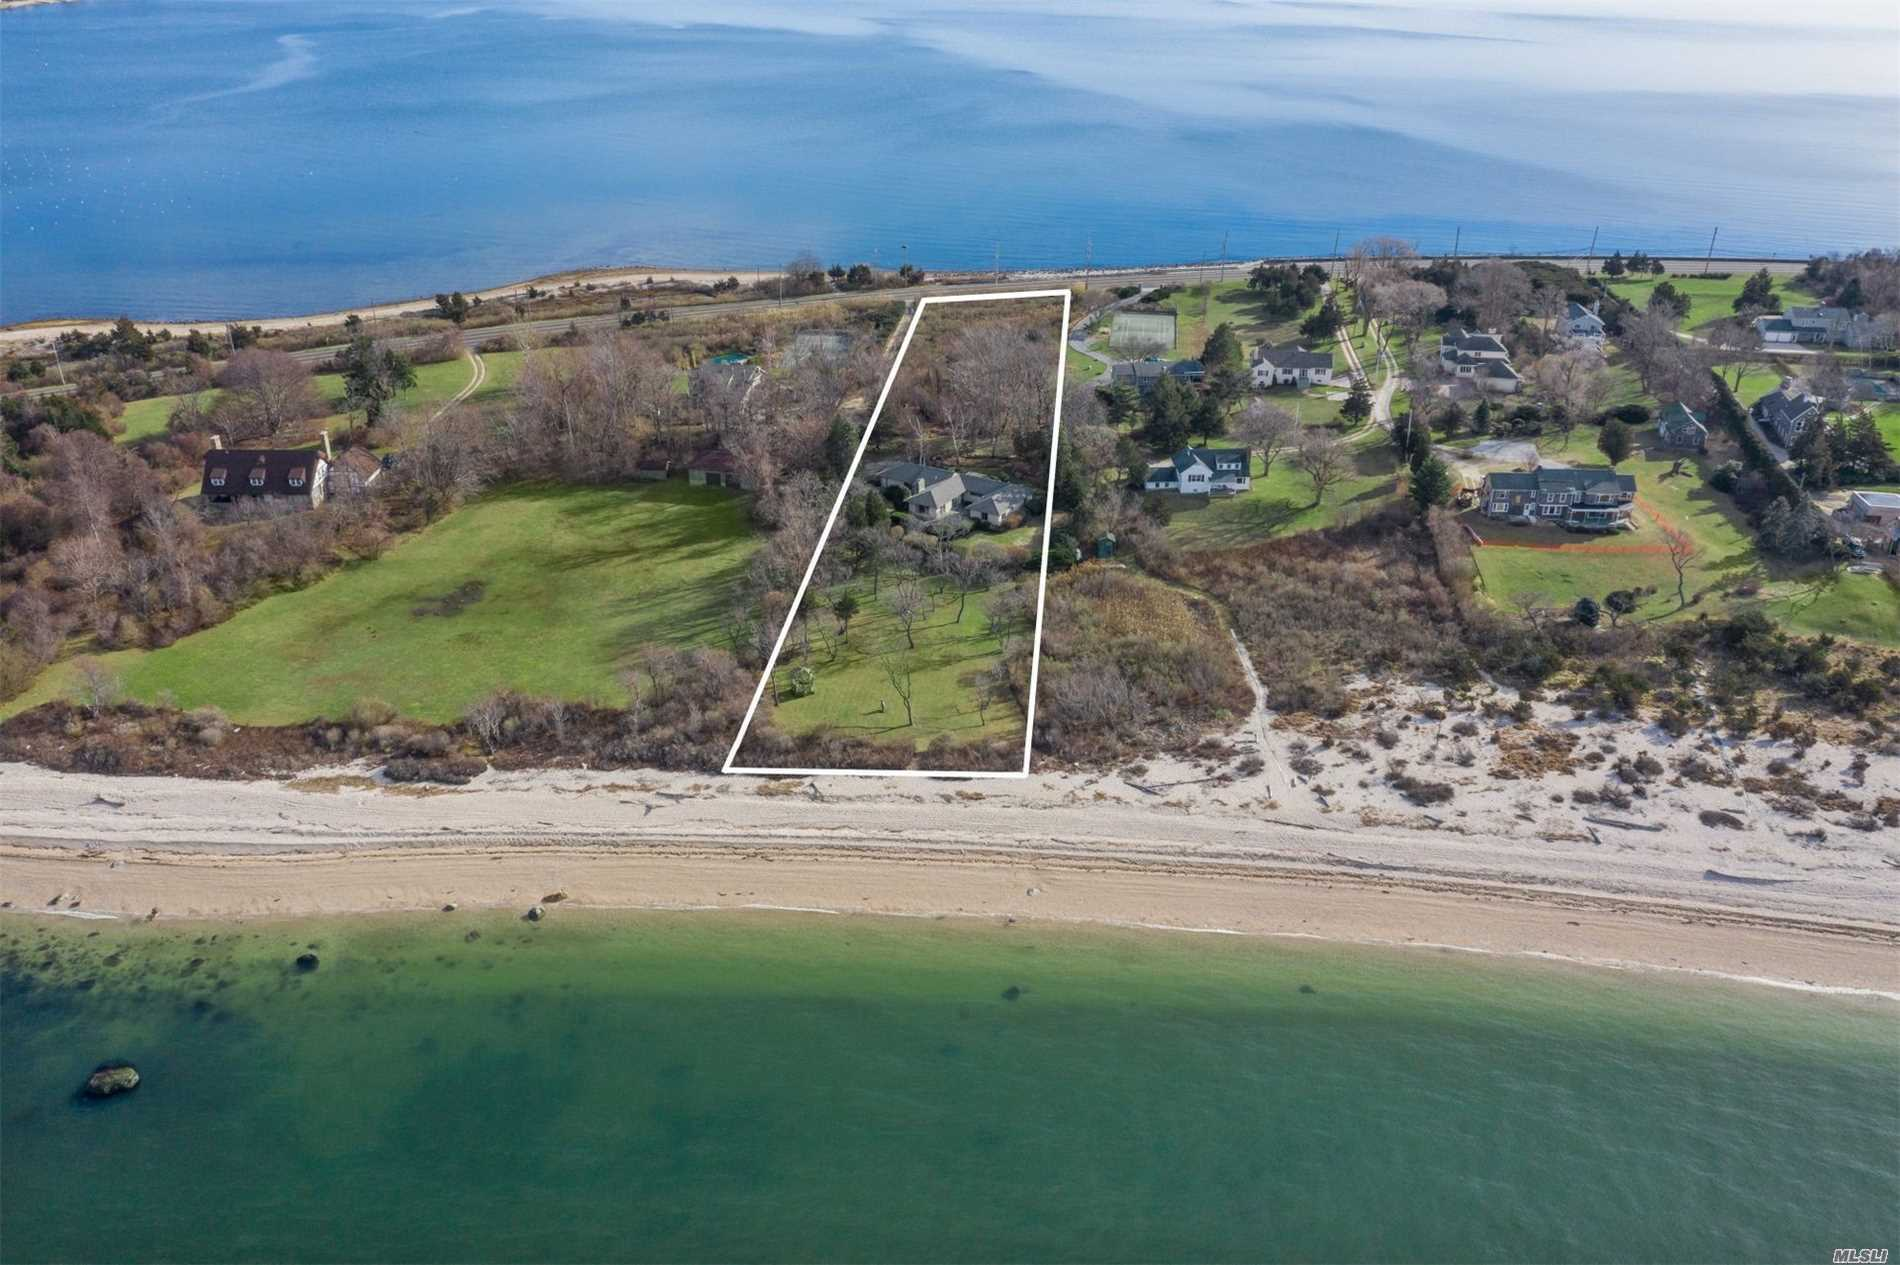 Rare 3+ Acres That Run From Orient Bay To The Sound. 3 Bed, 3.5 Bath Ranch On Stunning Property. 148' Of No-Bluff Private Sound Beach. Living Room W/Stone Fireplace, All Bedrooms Ensuite, Waterfront Stone Patio, And Sprawling Lawn To Sound. Room For Pool.